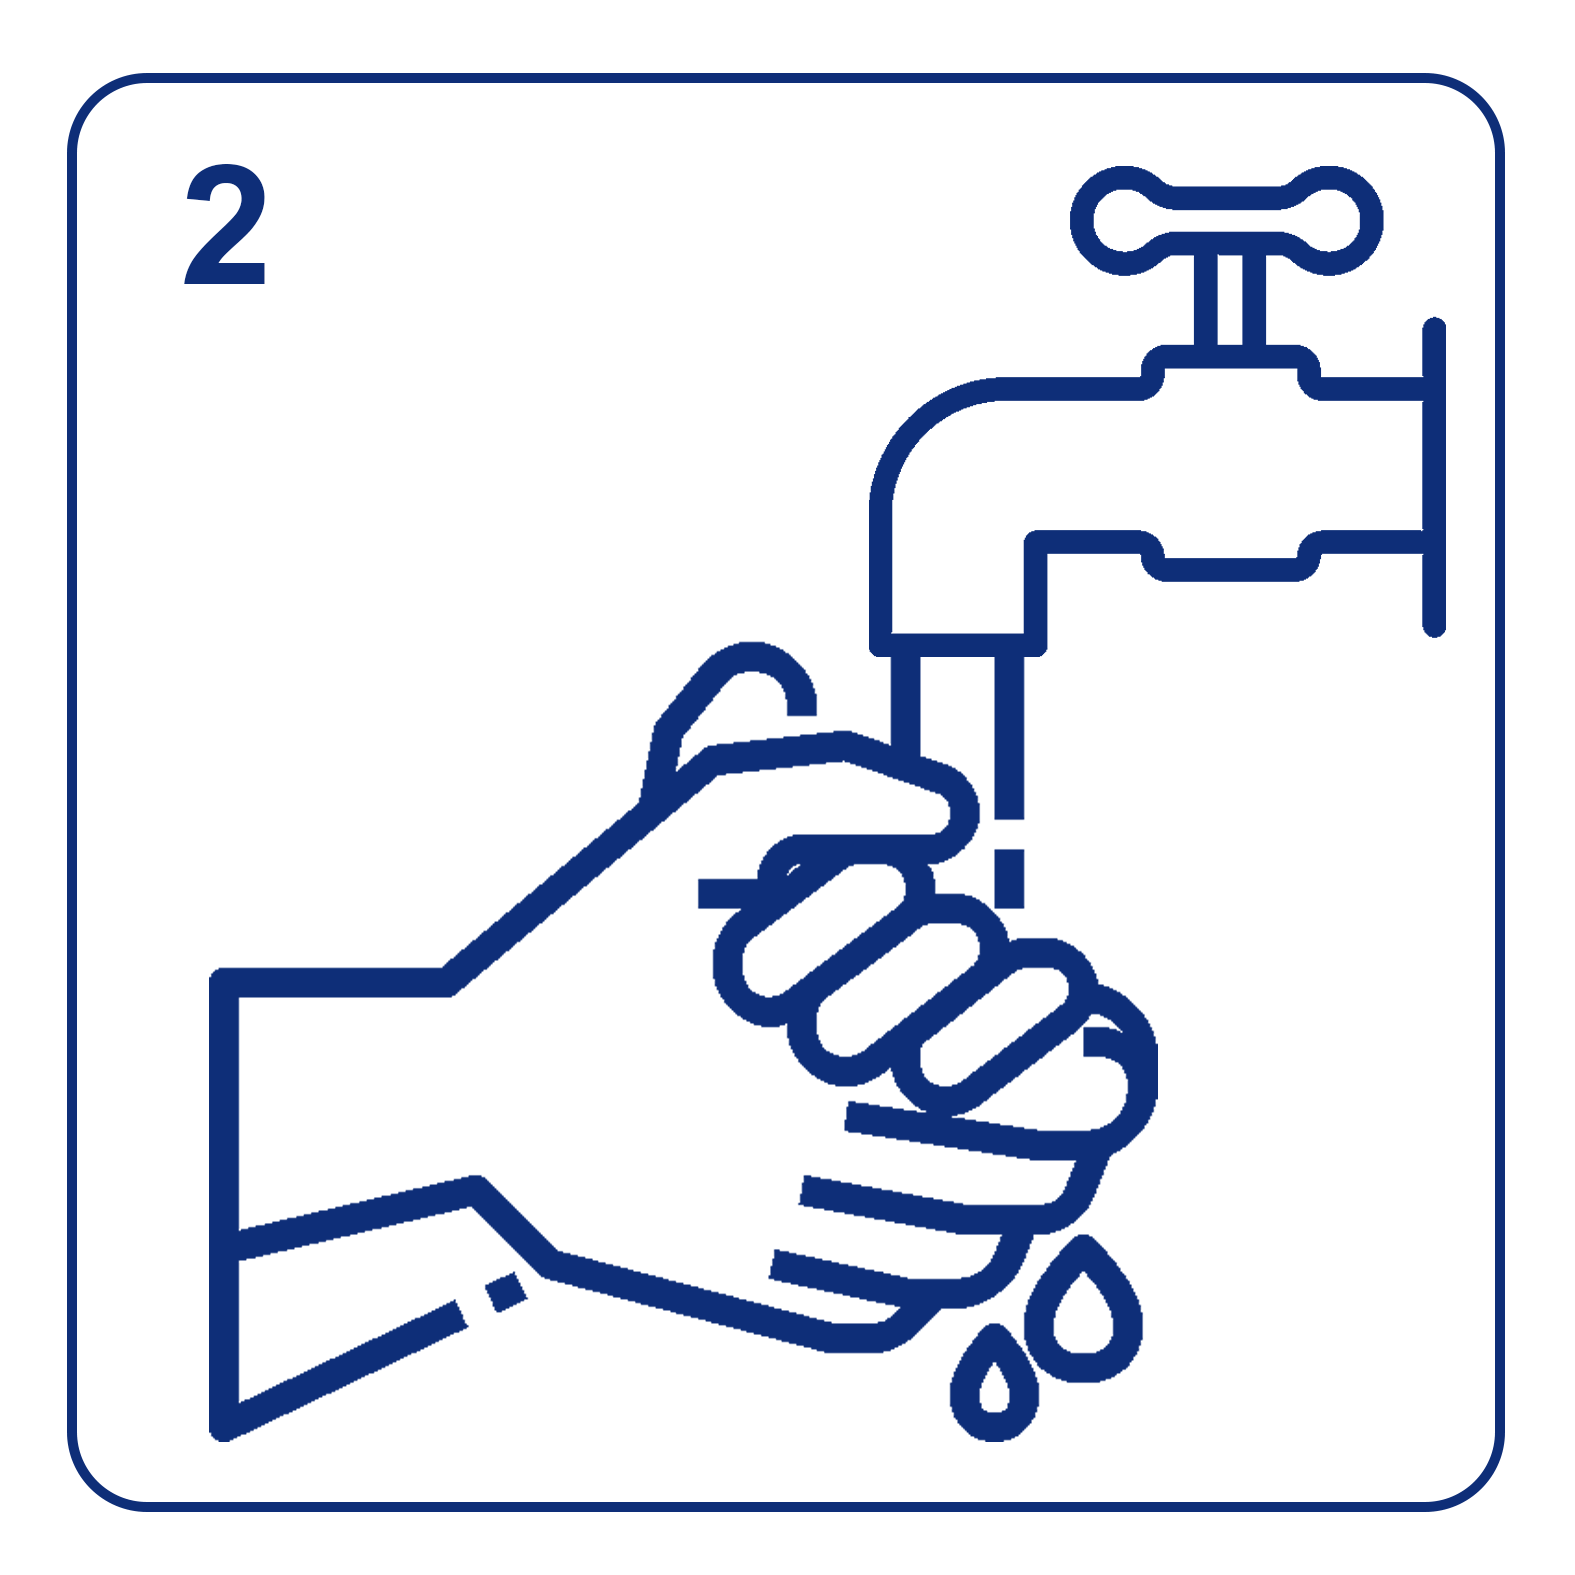 Wash hands thoroughly with soap and water to ensure fingertips are clean and dry.